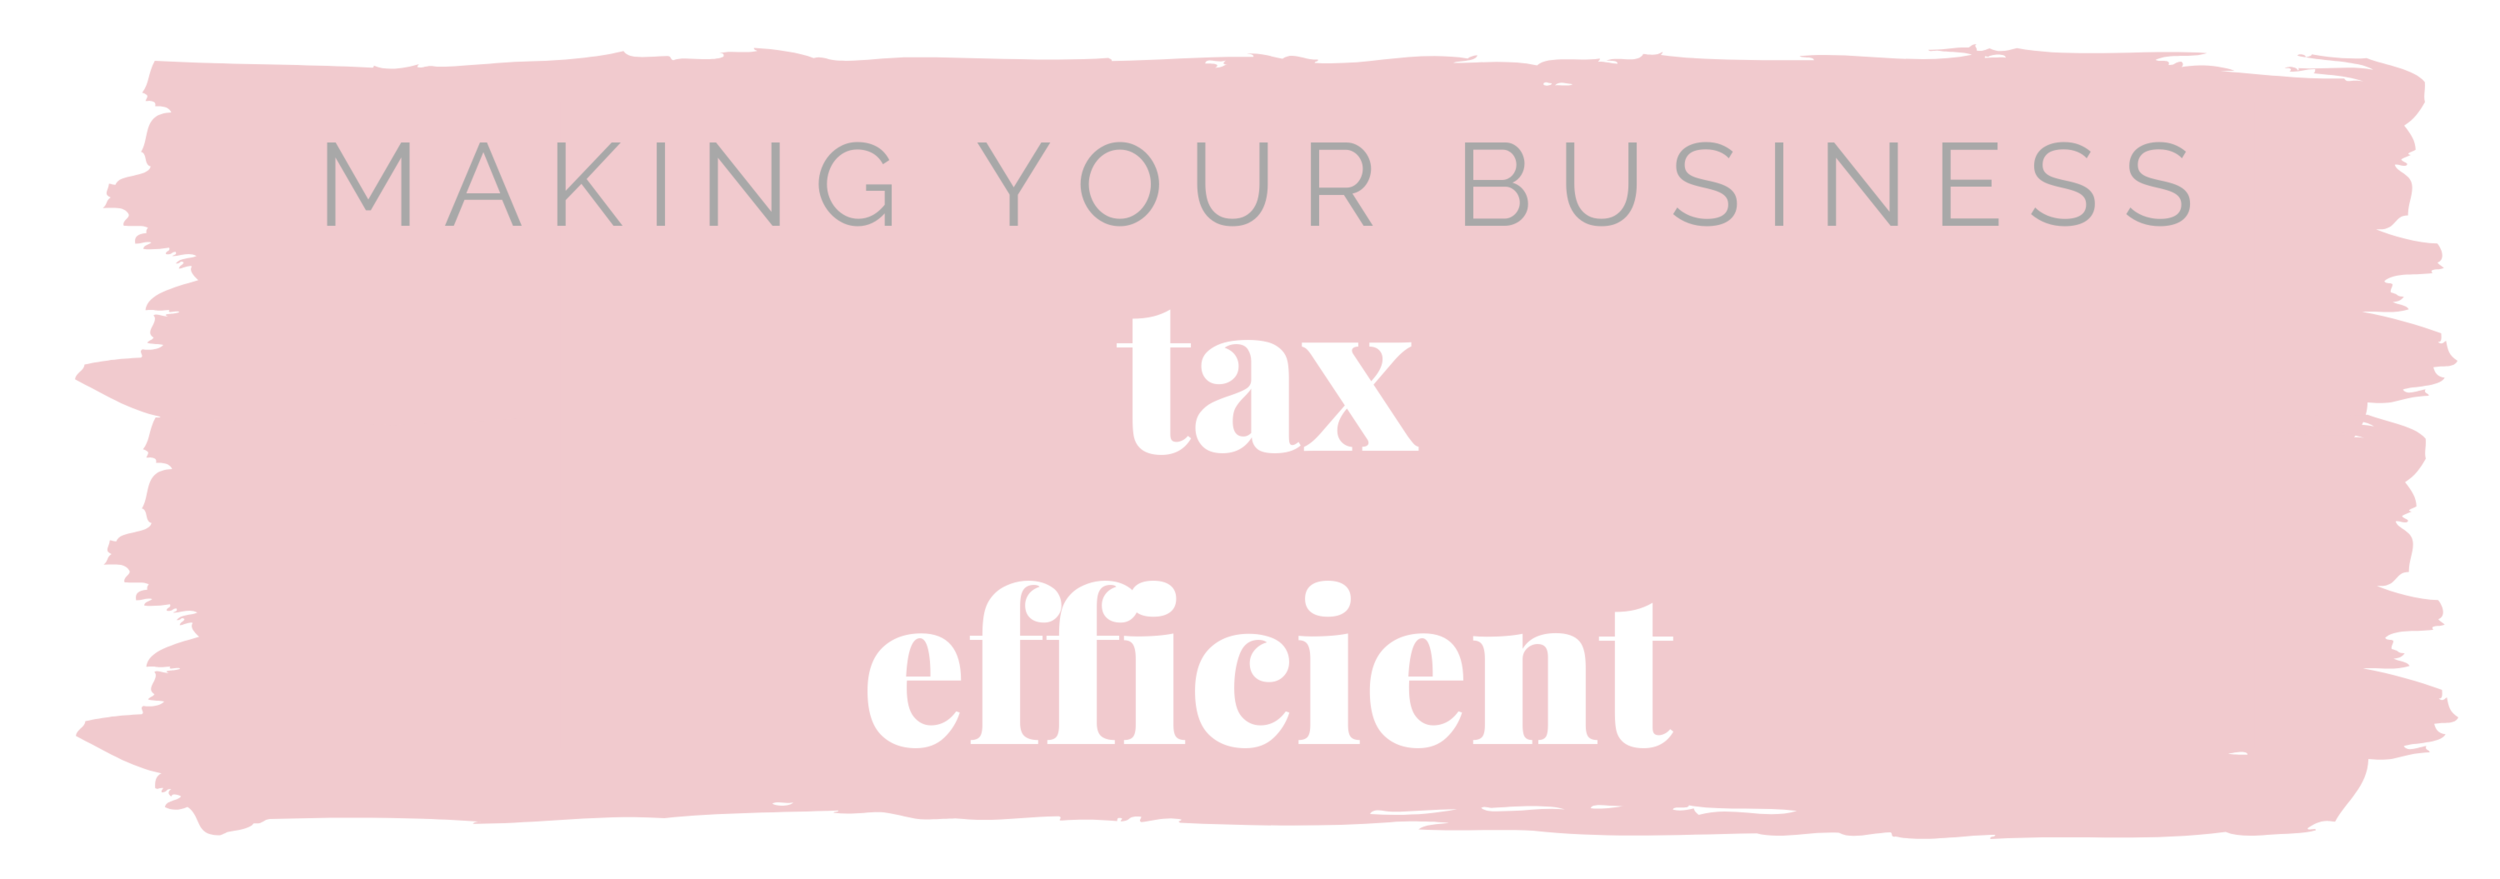 making your business tax efficient.png